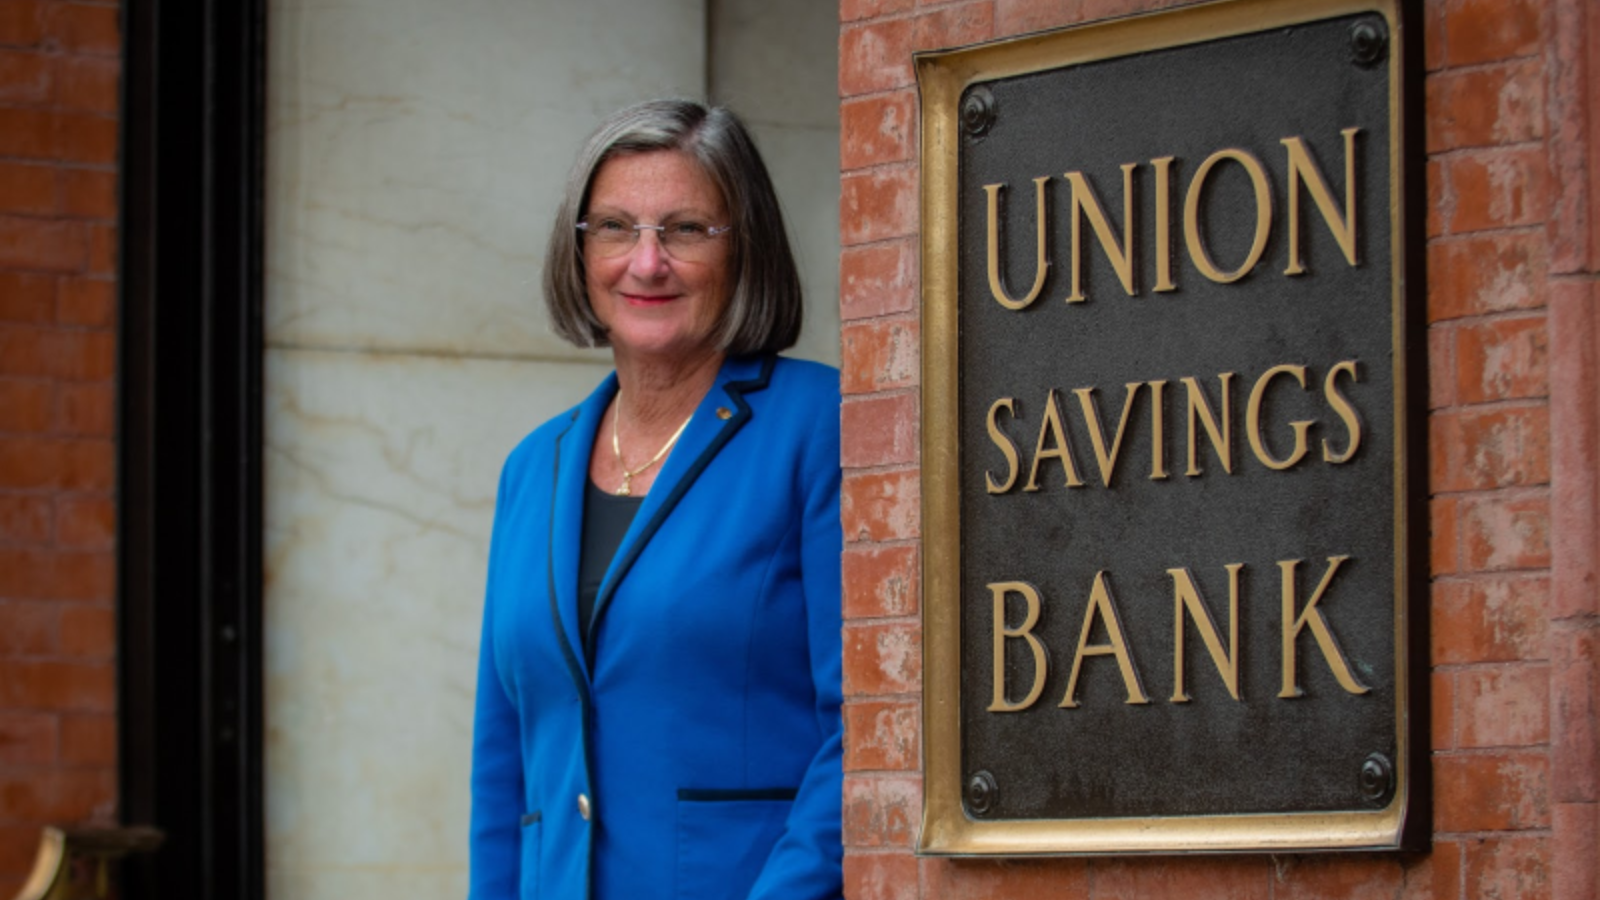 Cynthia Merkle standing in front of Union Savings Bank